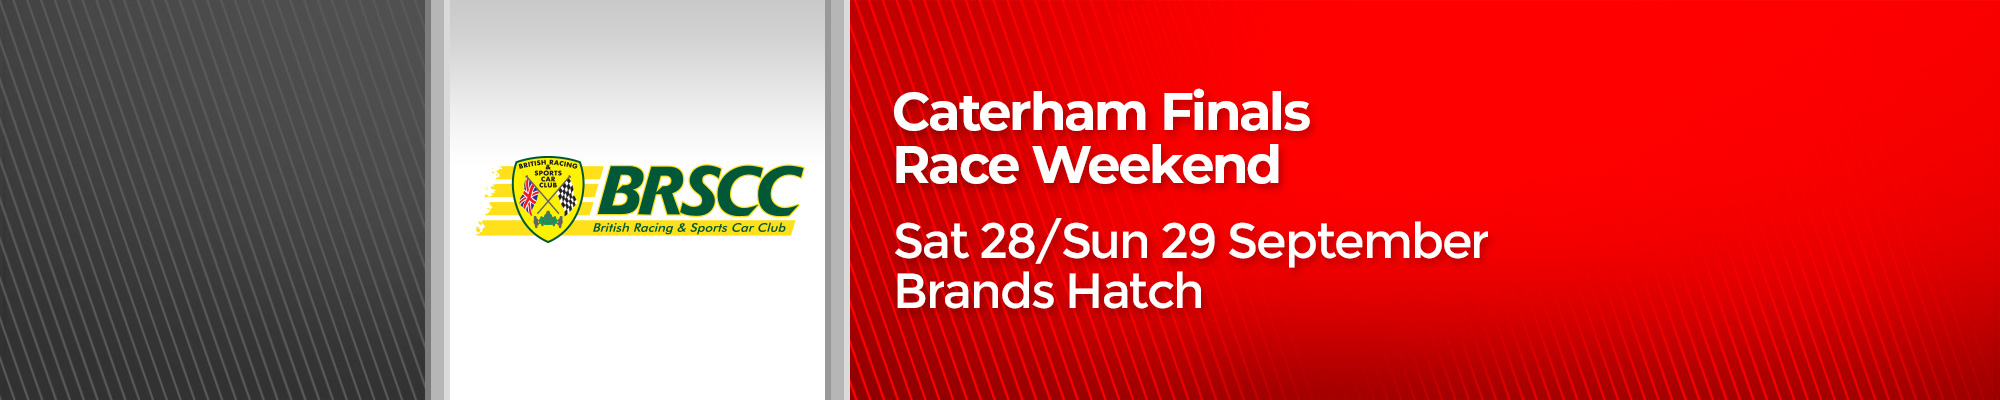 Caterham Finals Race Weekend